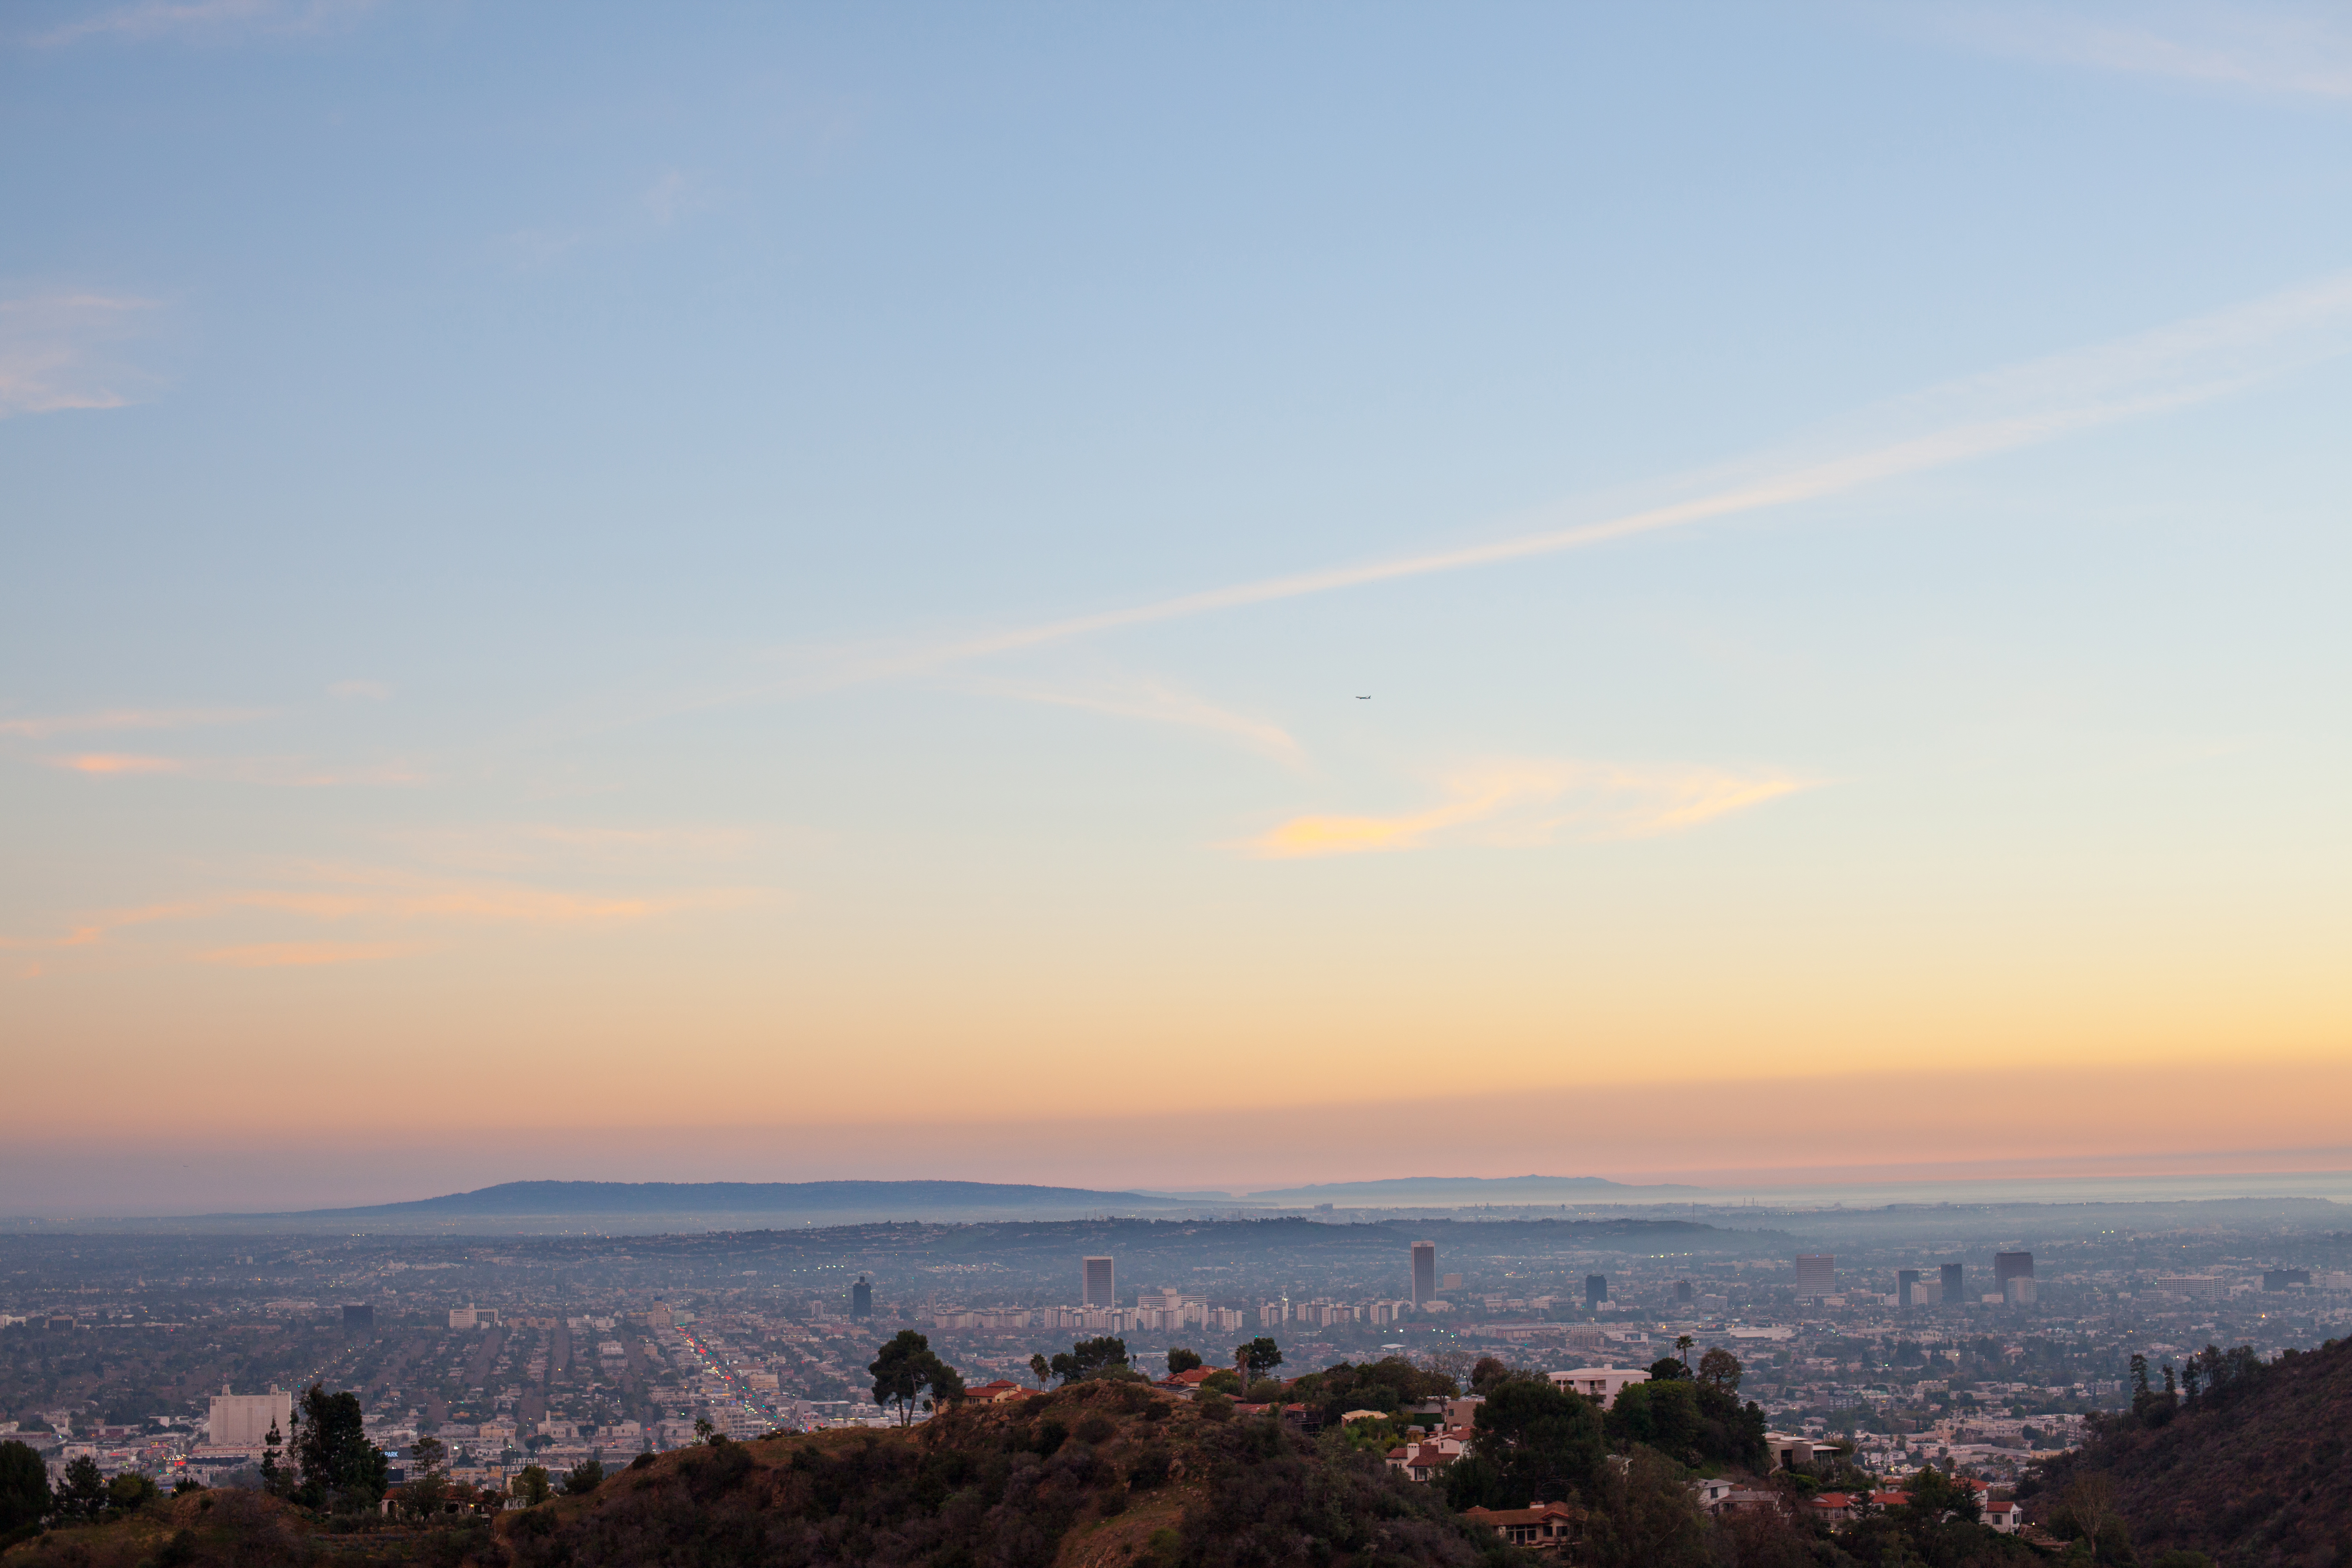 Los Angeles – Mount Hollywood Drive (c) Logra